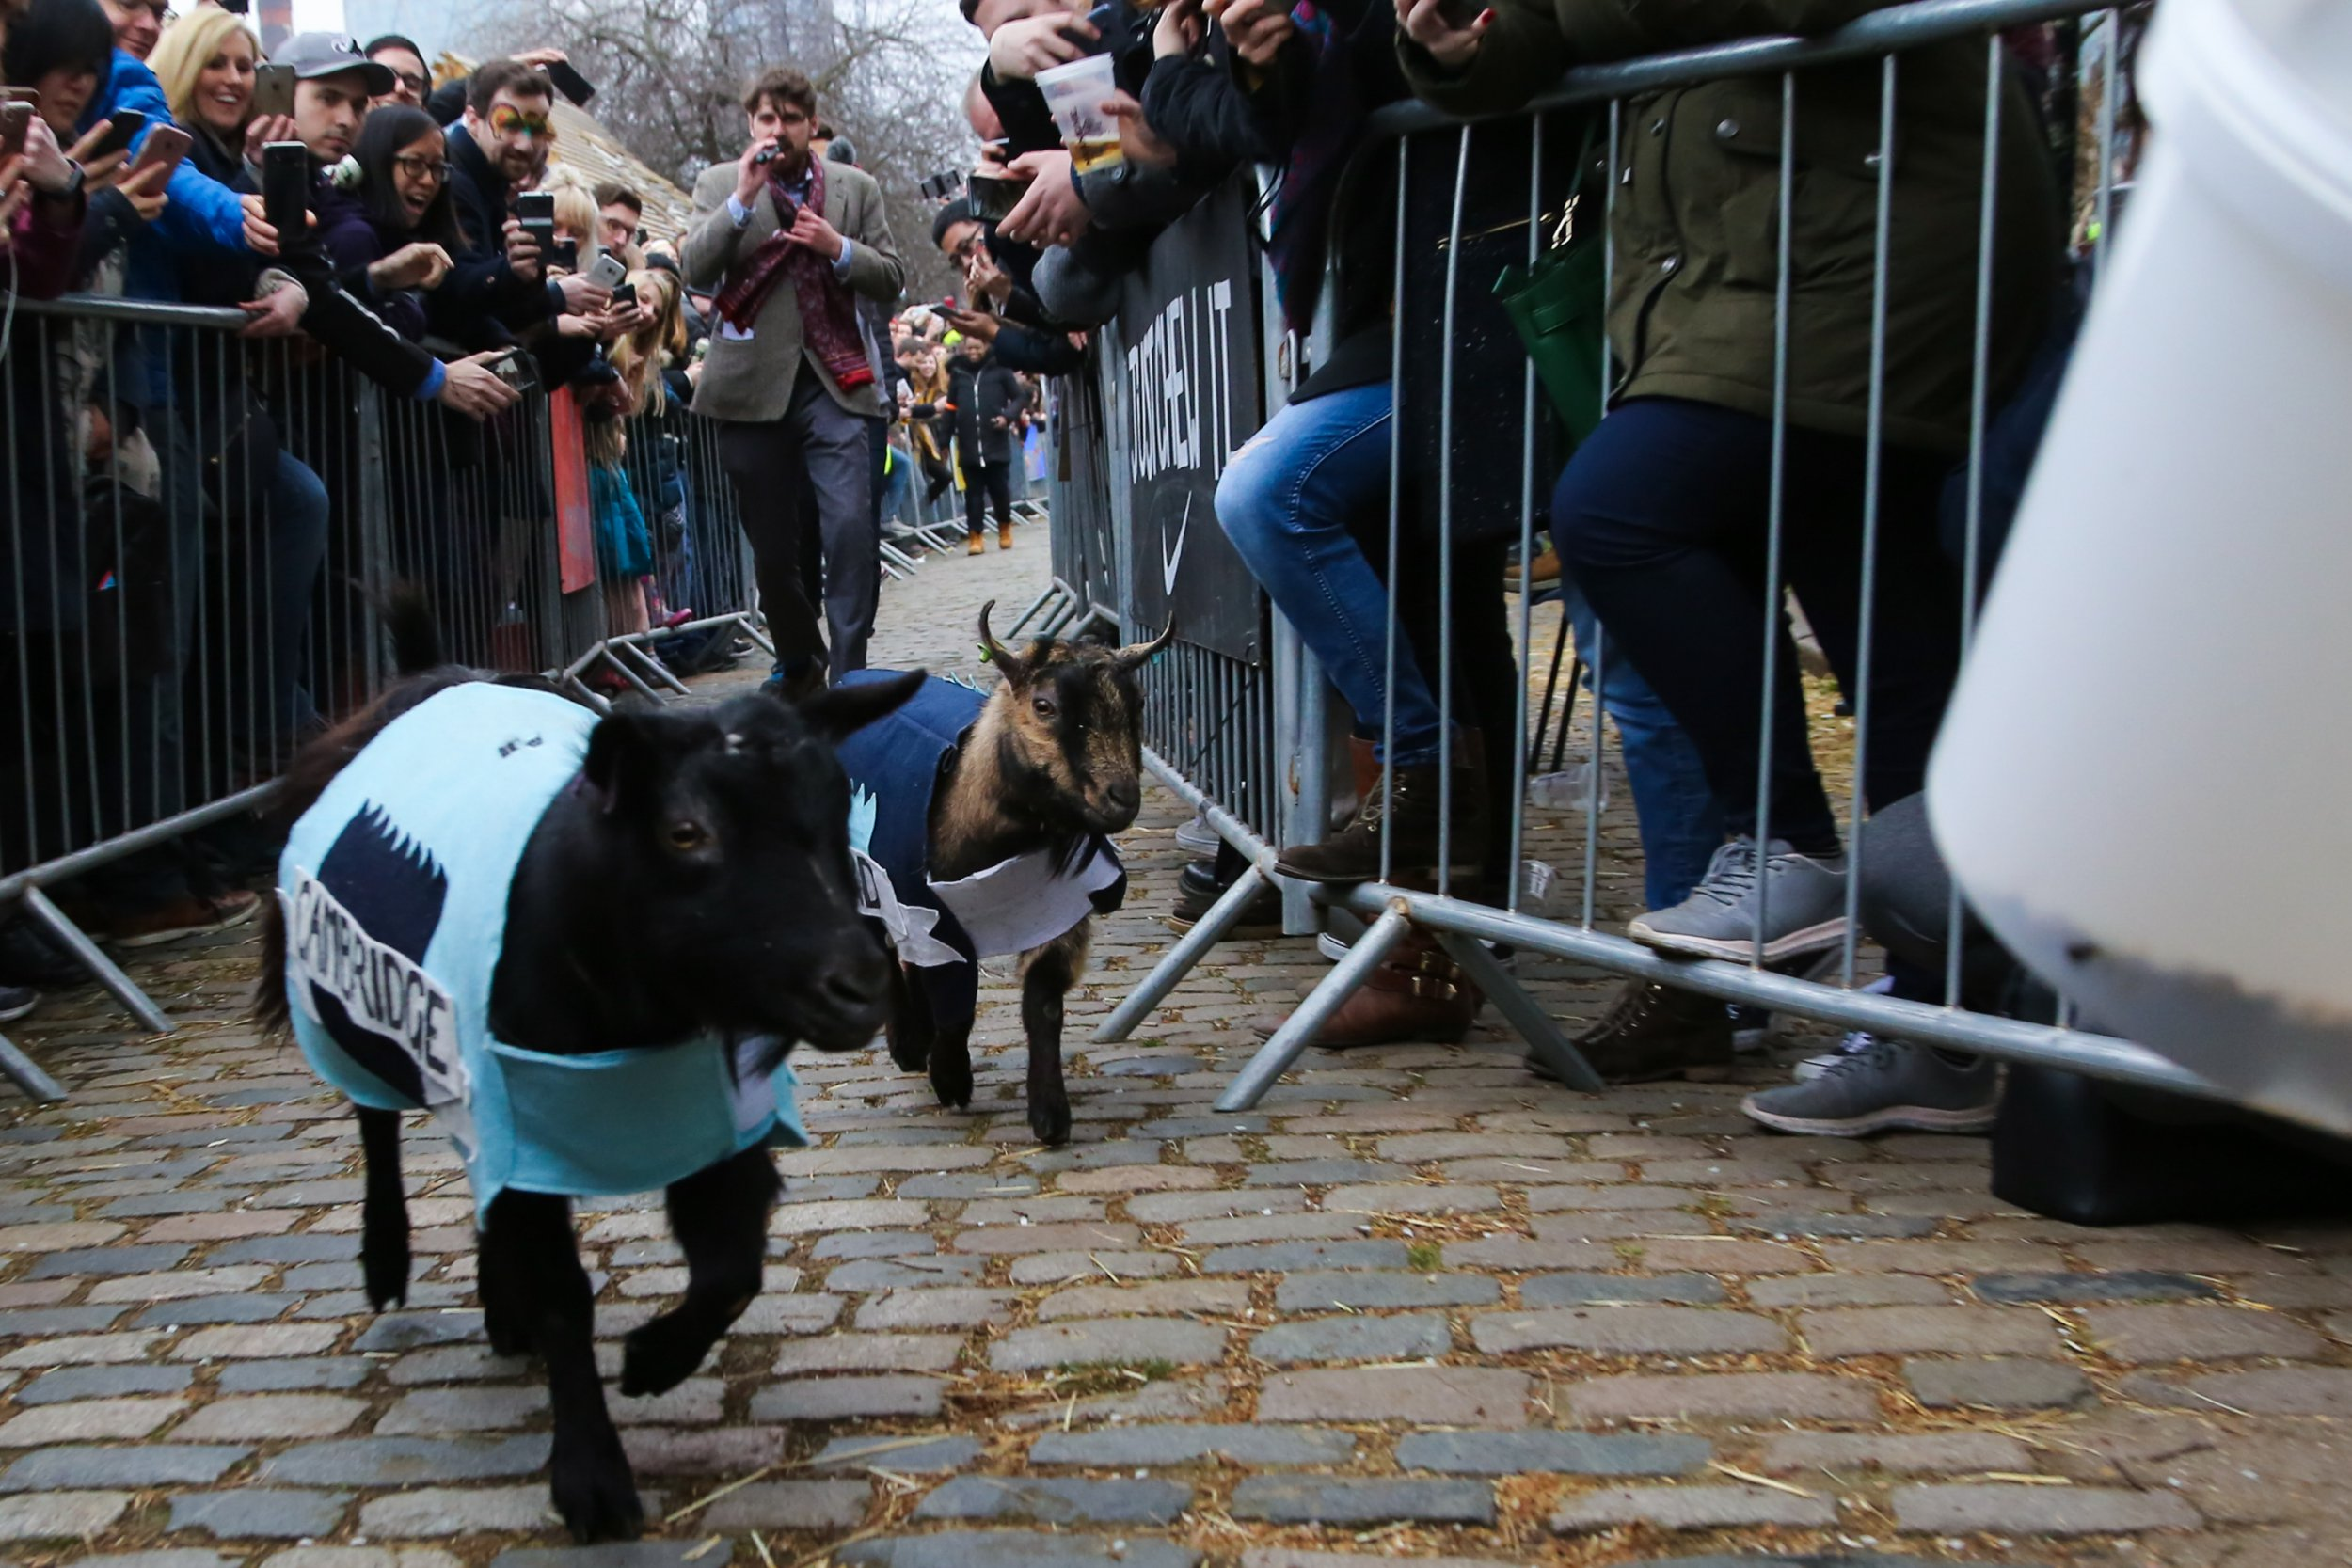 Hamish (Oxford) wins the Goat Race. Goats compete during the Hamish (Oxford) and Hugo (Cambridge) Goat Race at Spitalfields City Farm in East London. The annual fundraising event, which takes place on the same day as the Oxford and Cambridge boat race, where two goats, one named ???Oxford???, the other ???Cambridge???, going horn to horn to be crowned King Billy. Featuring: Hamish (Oxford), Hugo (Cambridge) Where: London, United Kingdom When: 24 Mar 2018 Credit: Dinendra Haria/WENN